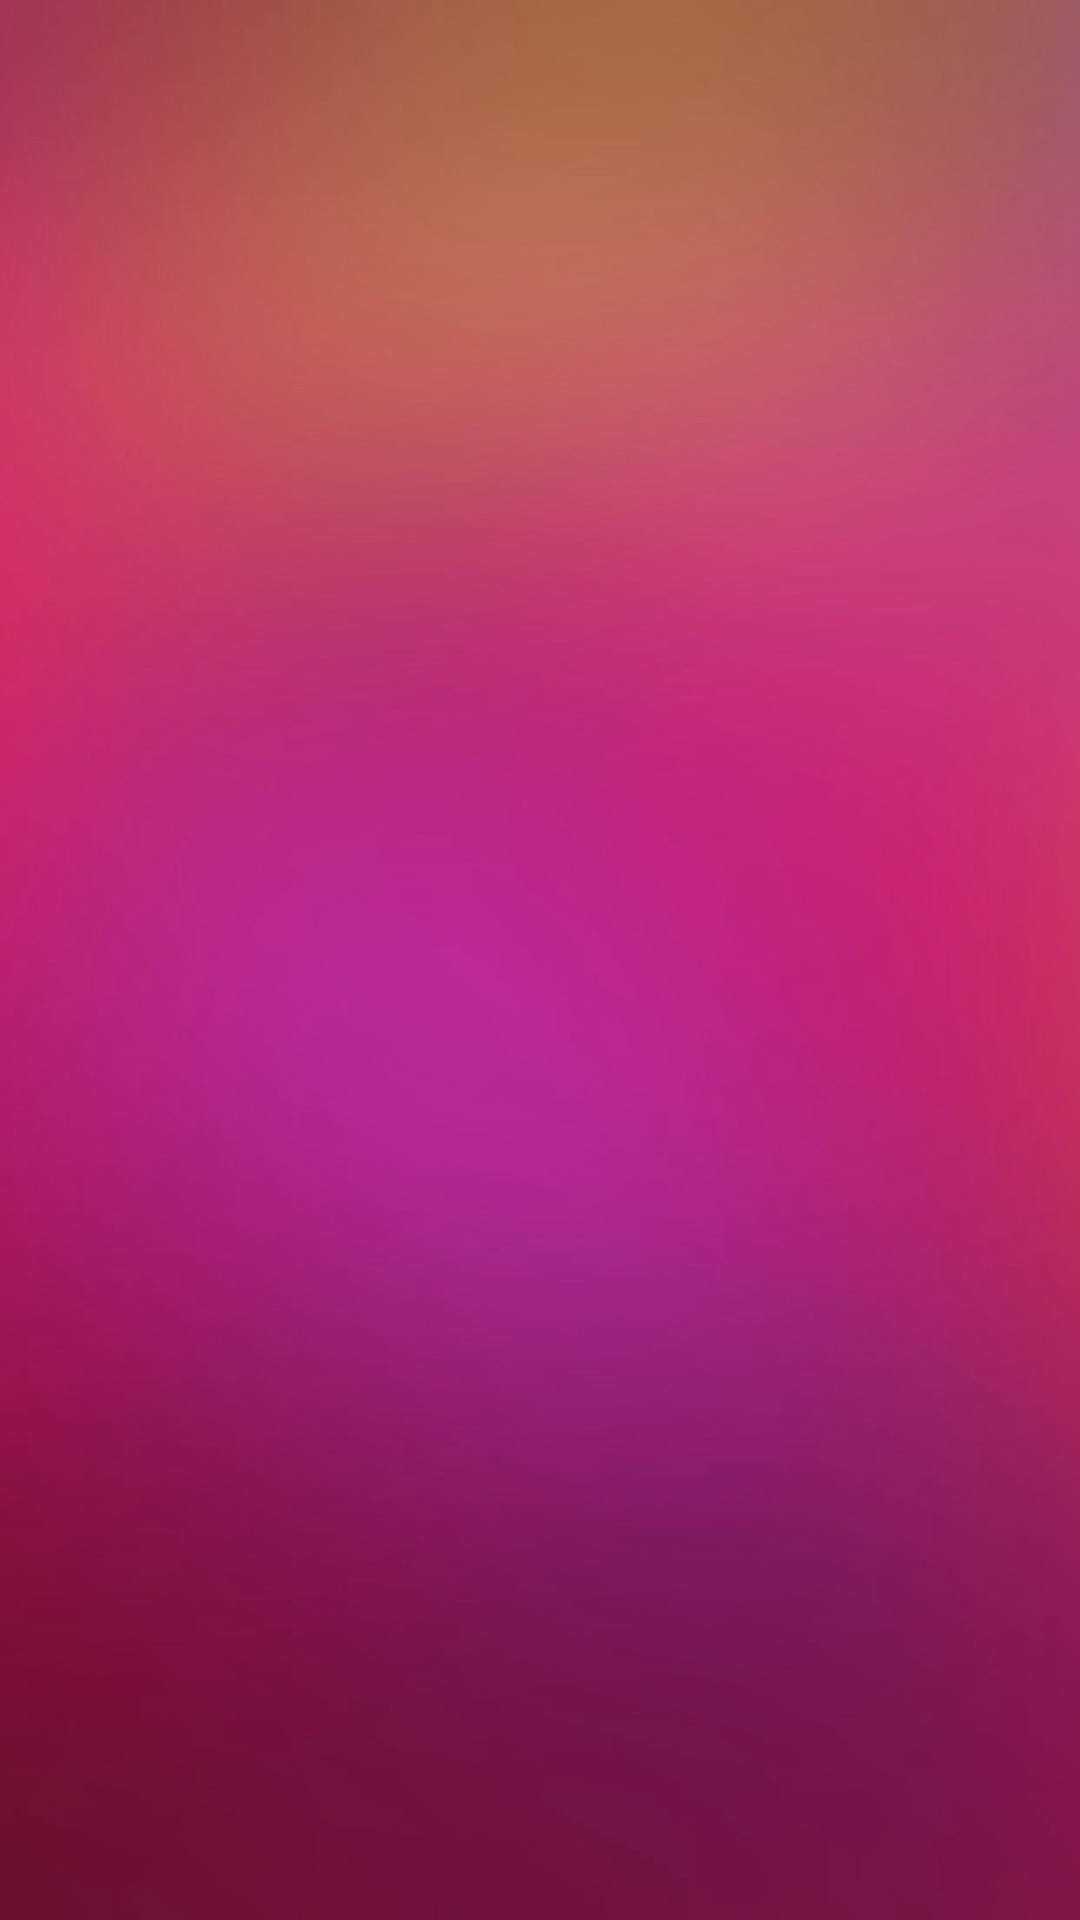 Explore Pink Wallpaper For Iphone and more!